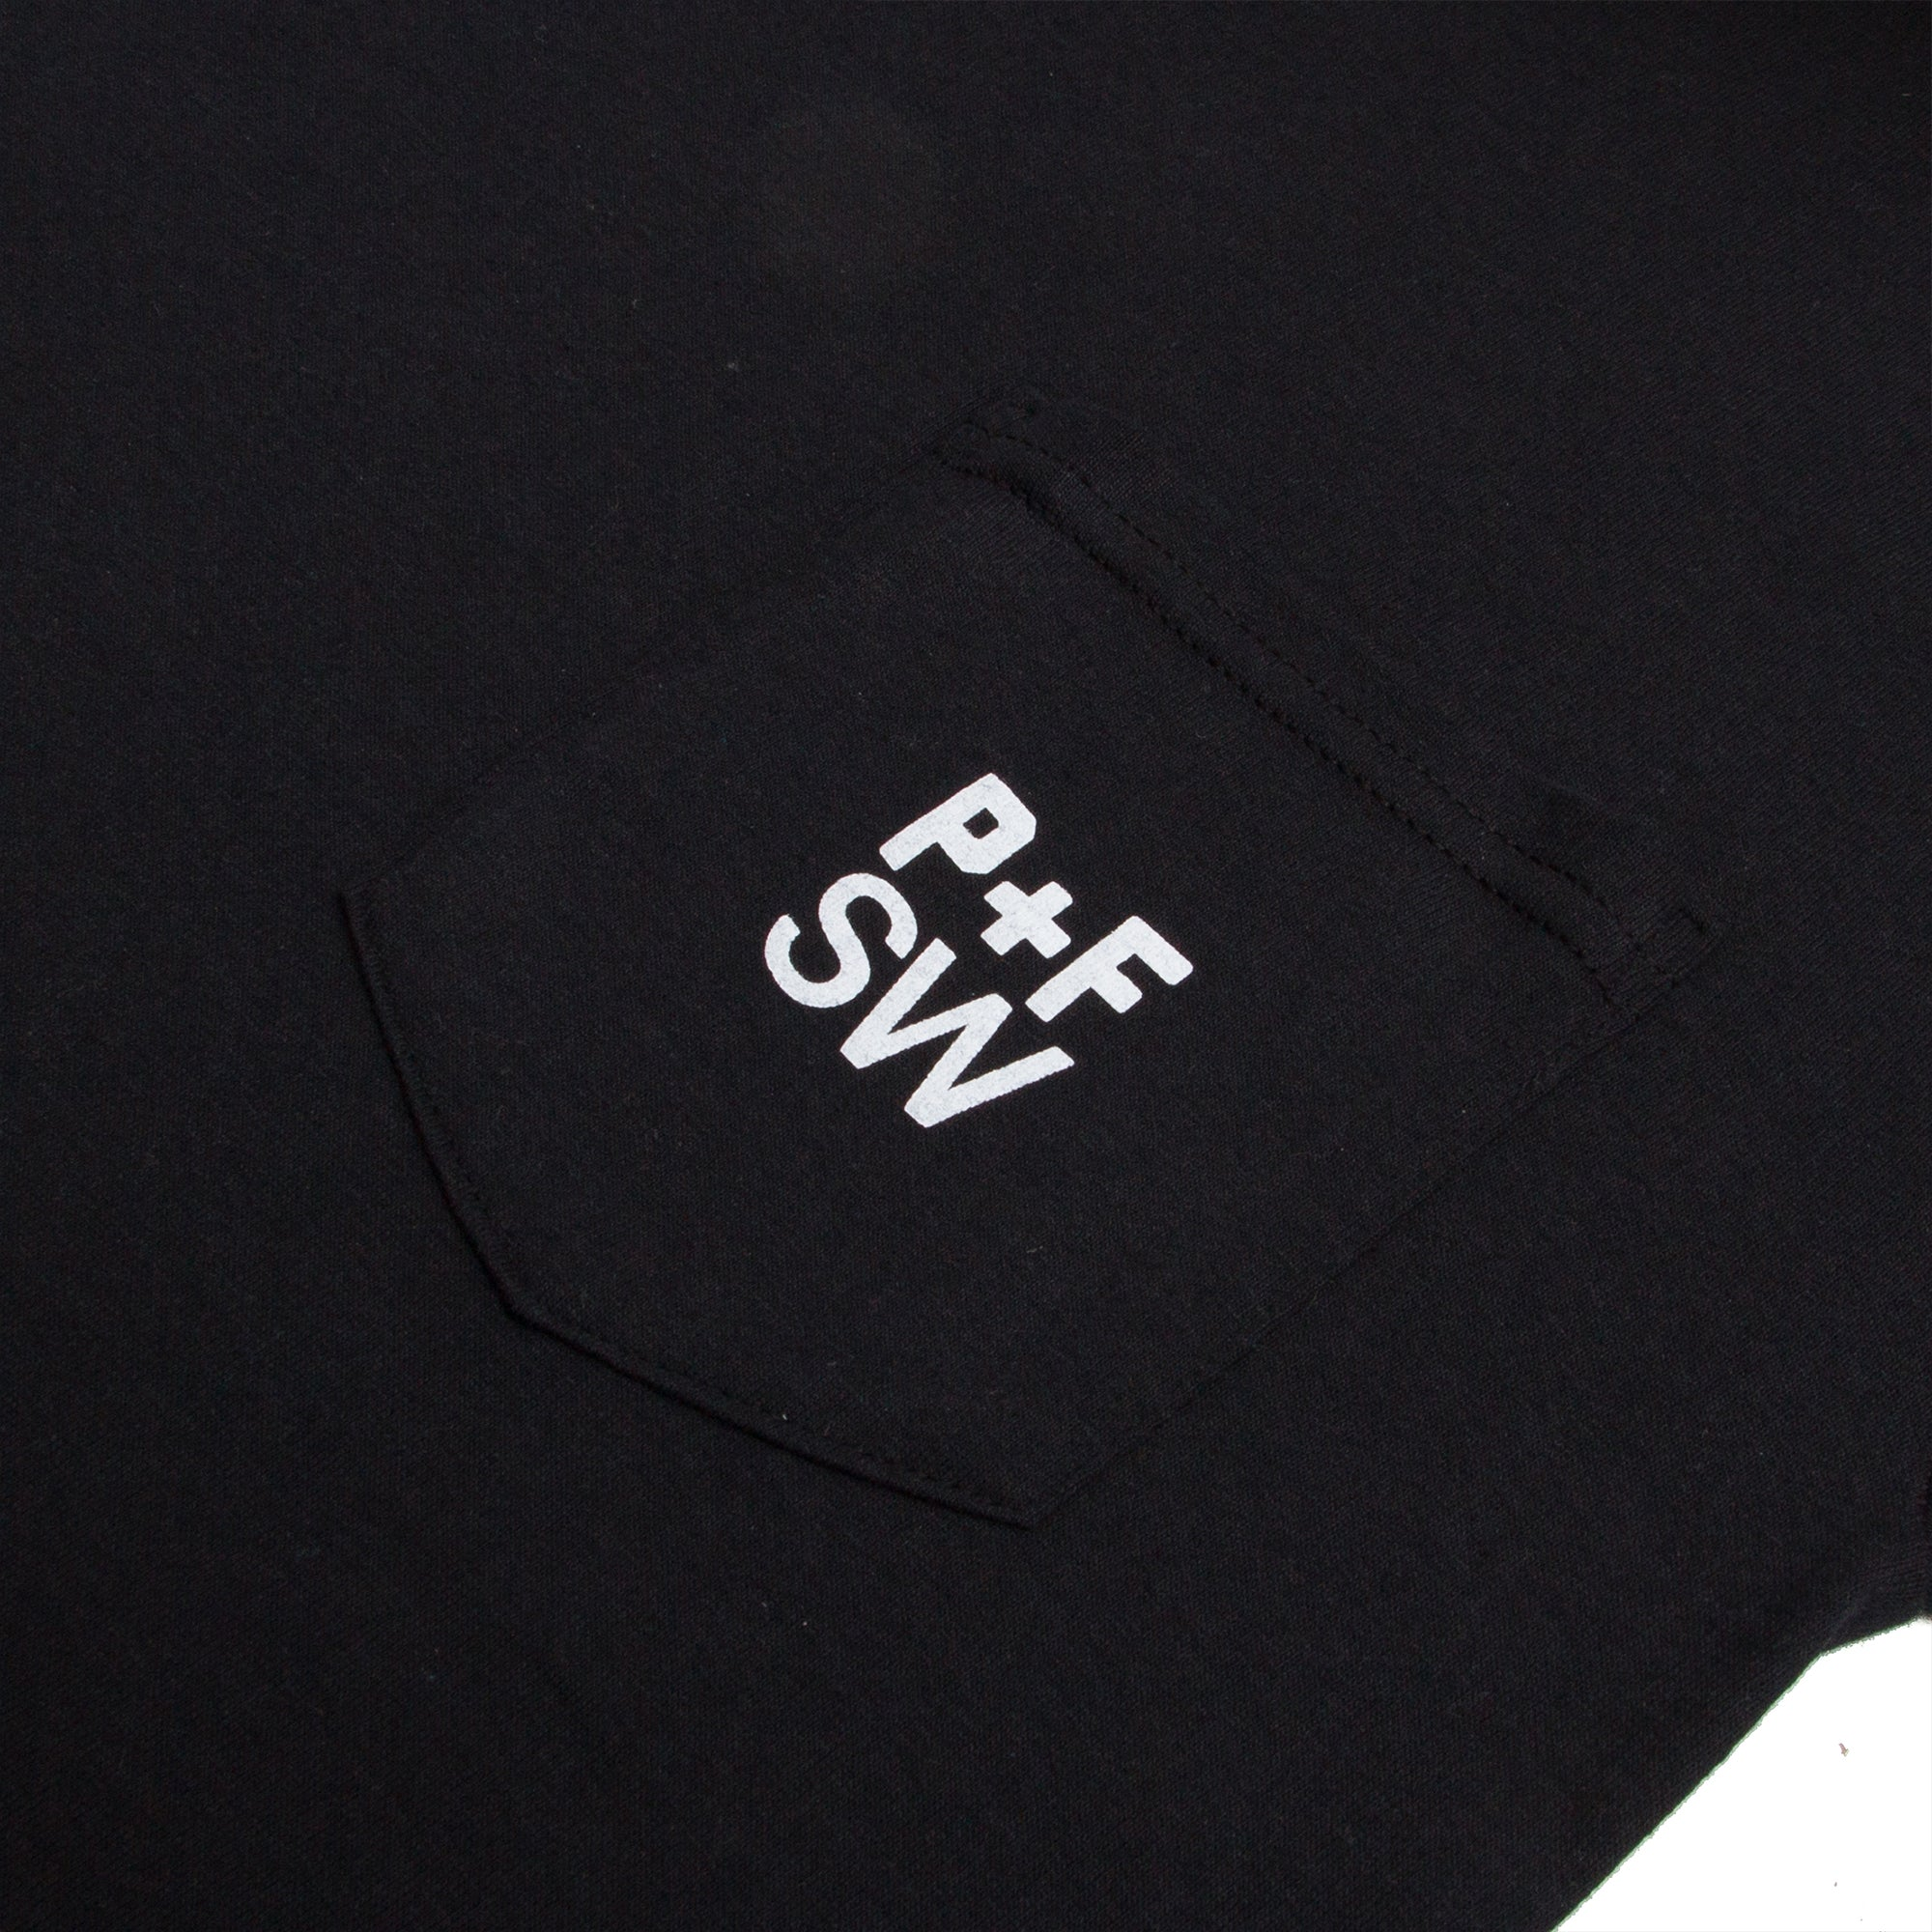 P+F & SW Pocket Tee - T-Shirts - Saintwoods